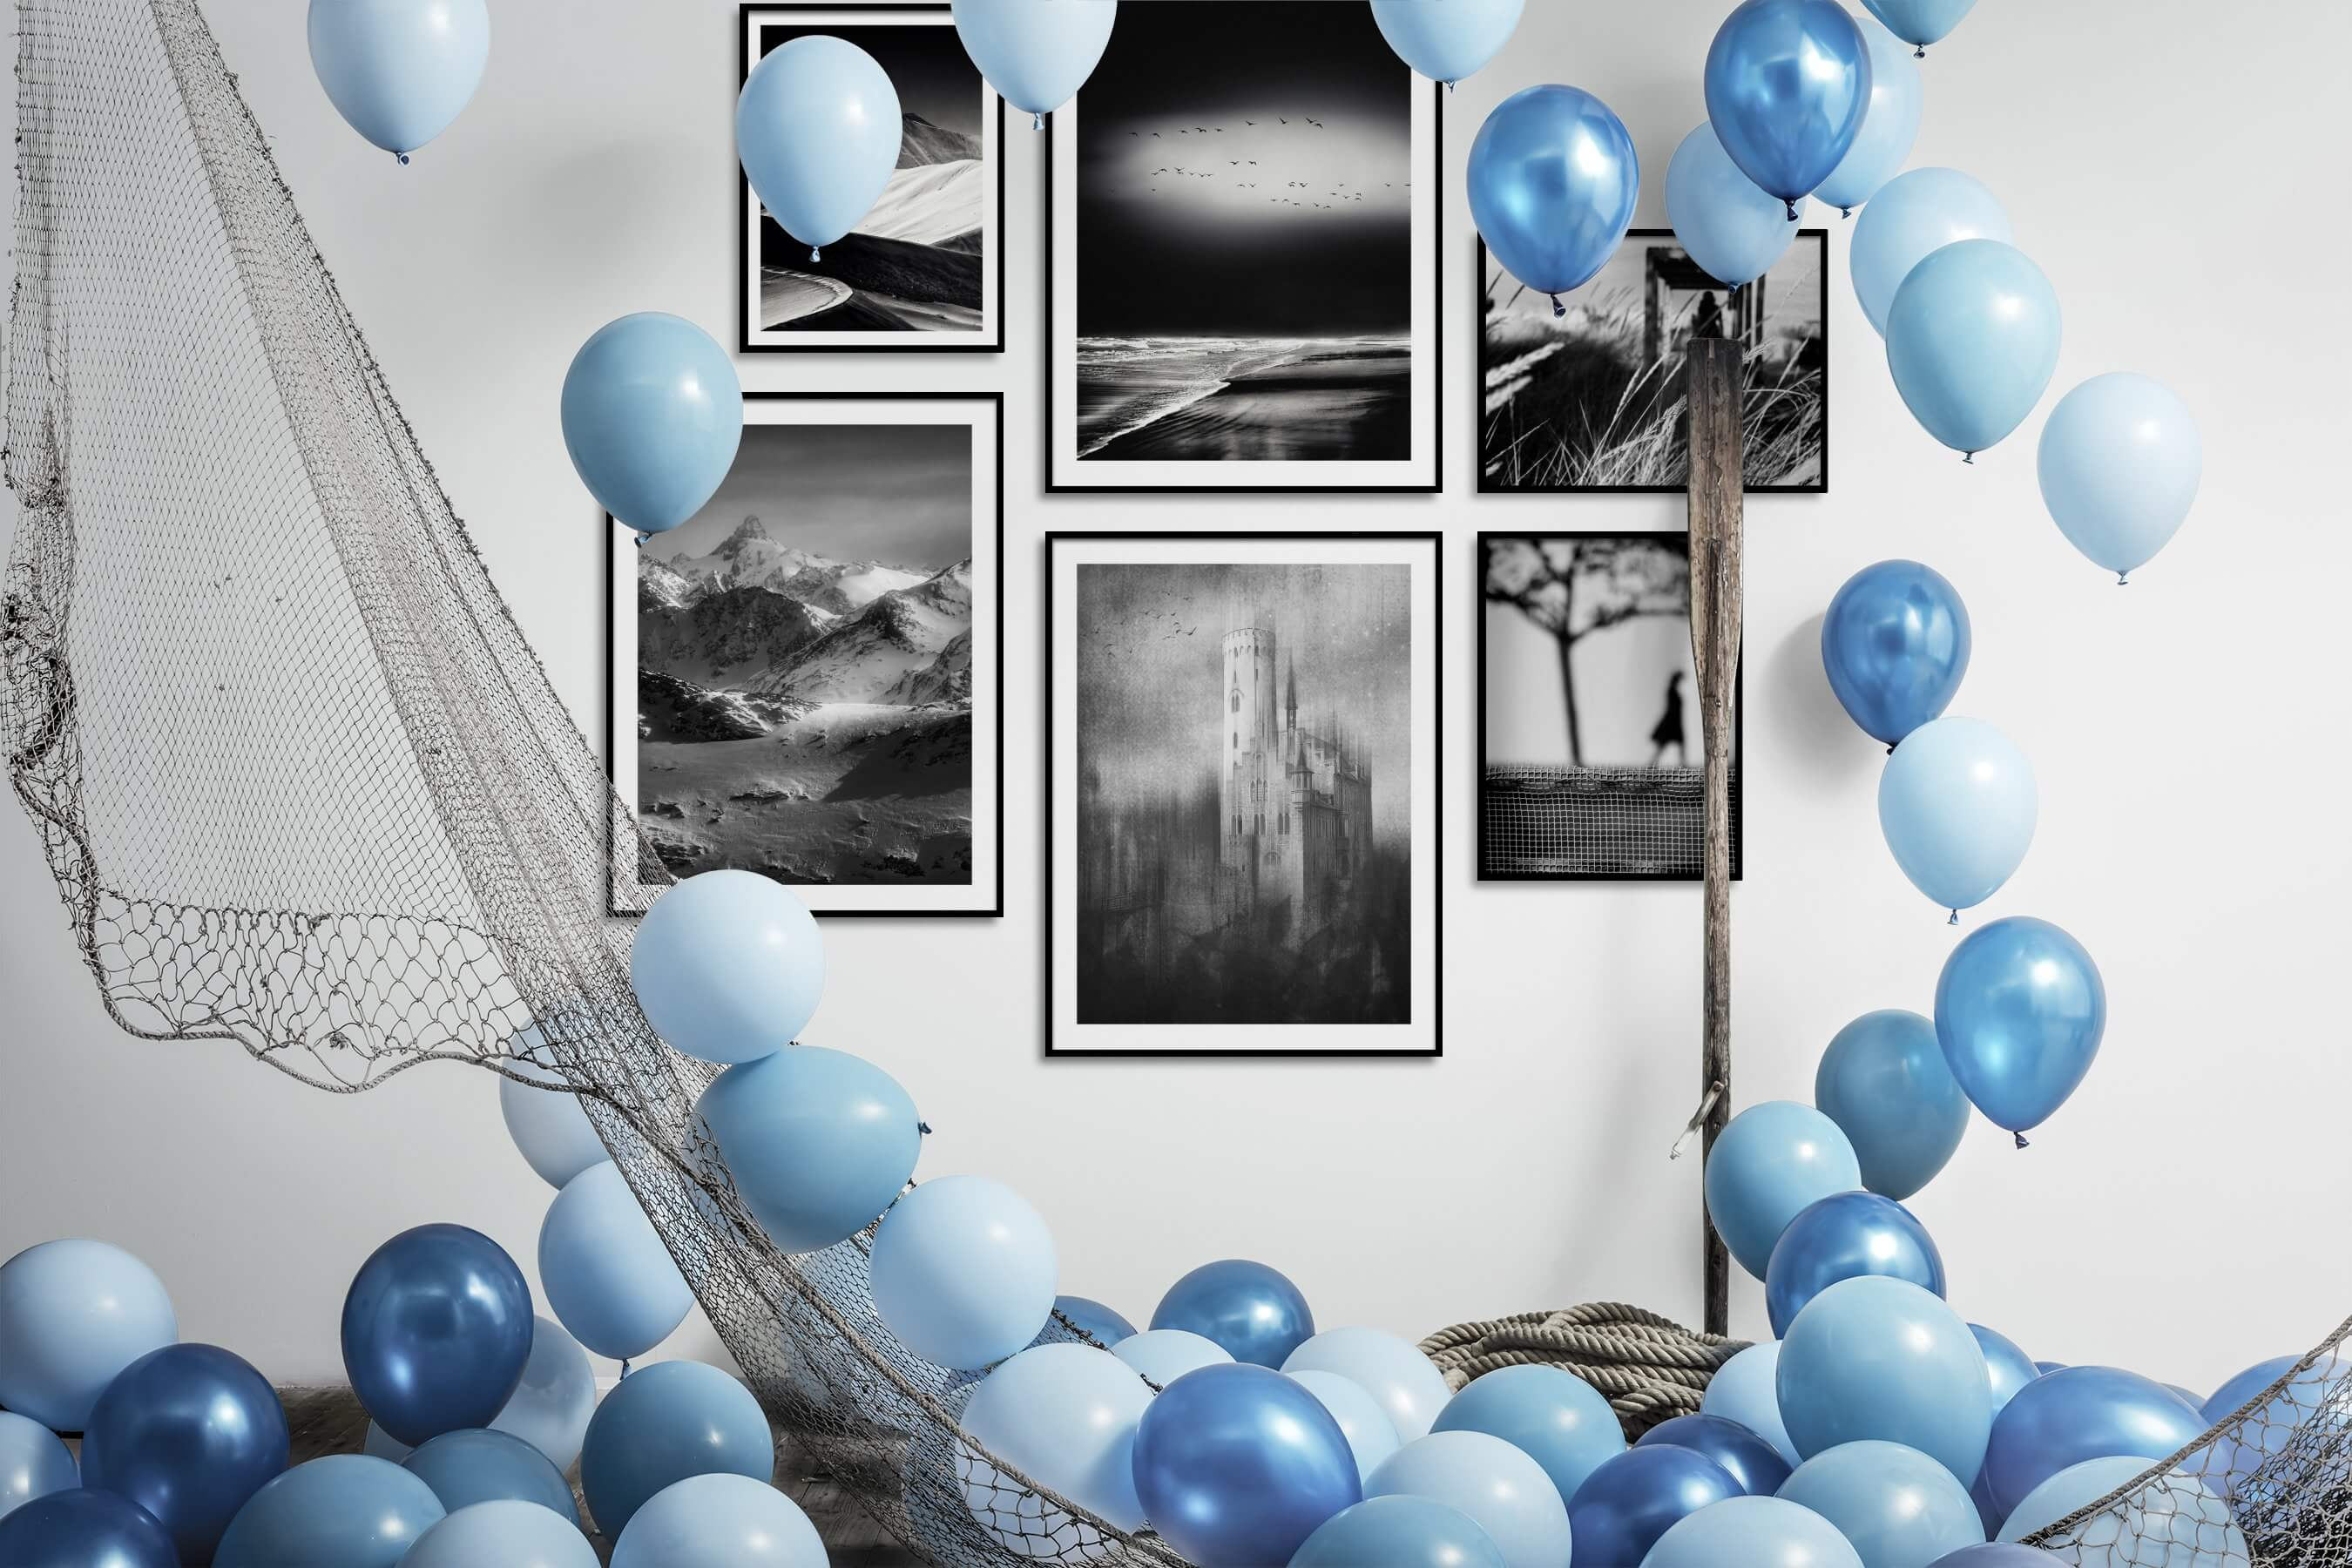 Gallery wall idea with six framed pictures arranged on a wall depicting Black & White, For the Moderate, Nature, Beach & Water, Vintage, Country Life, and Artsy